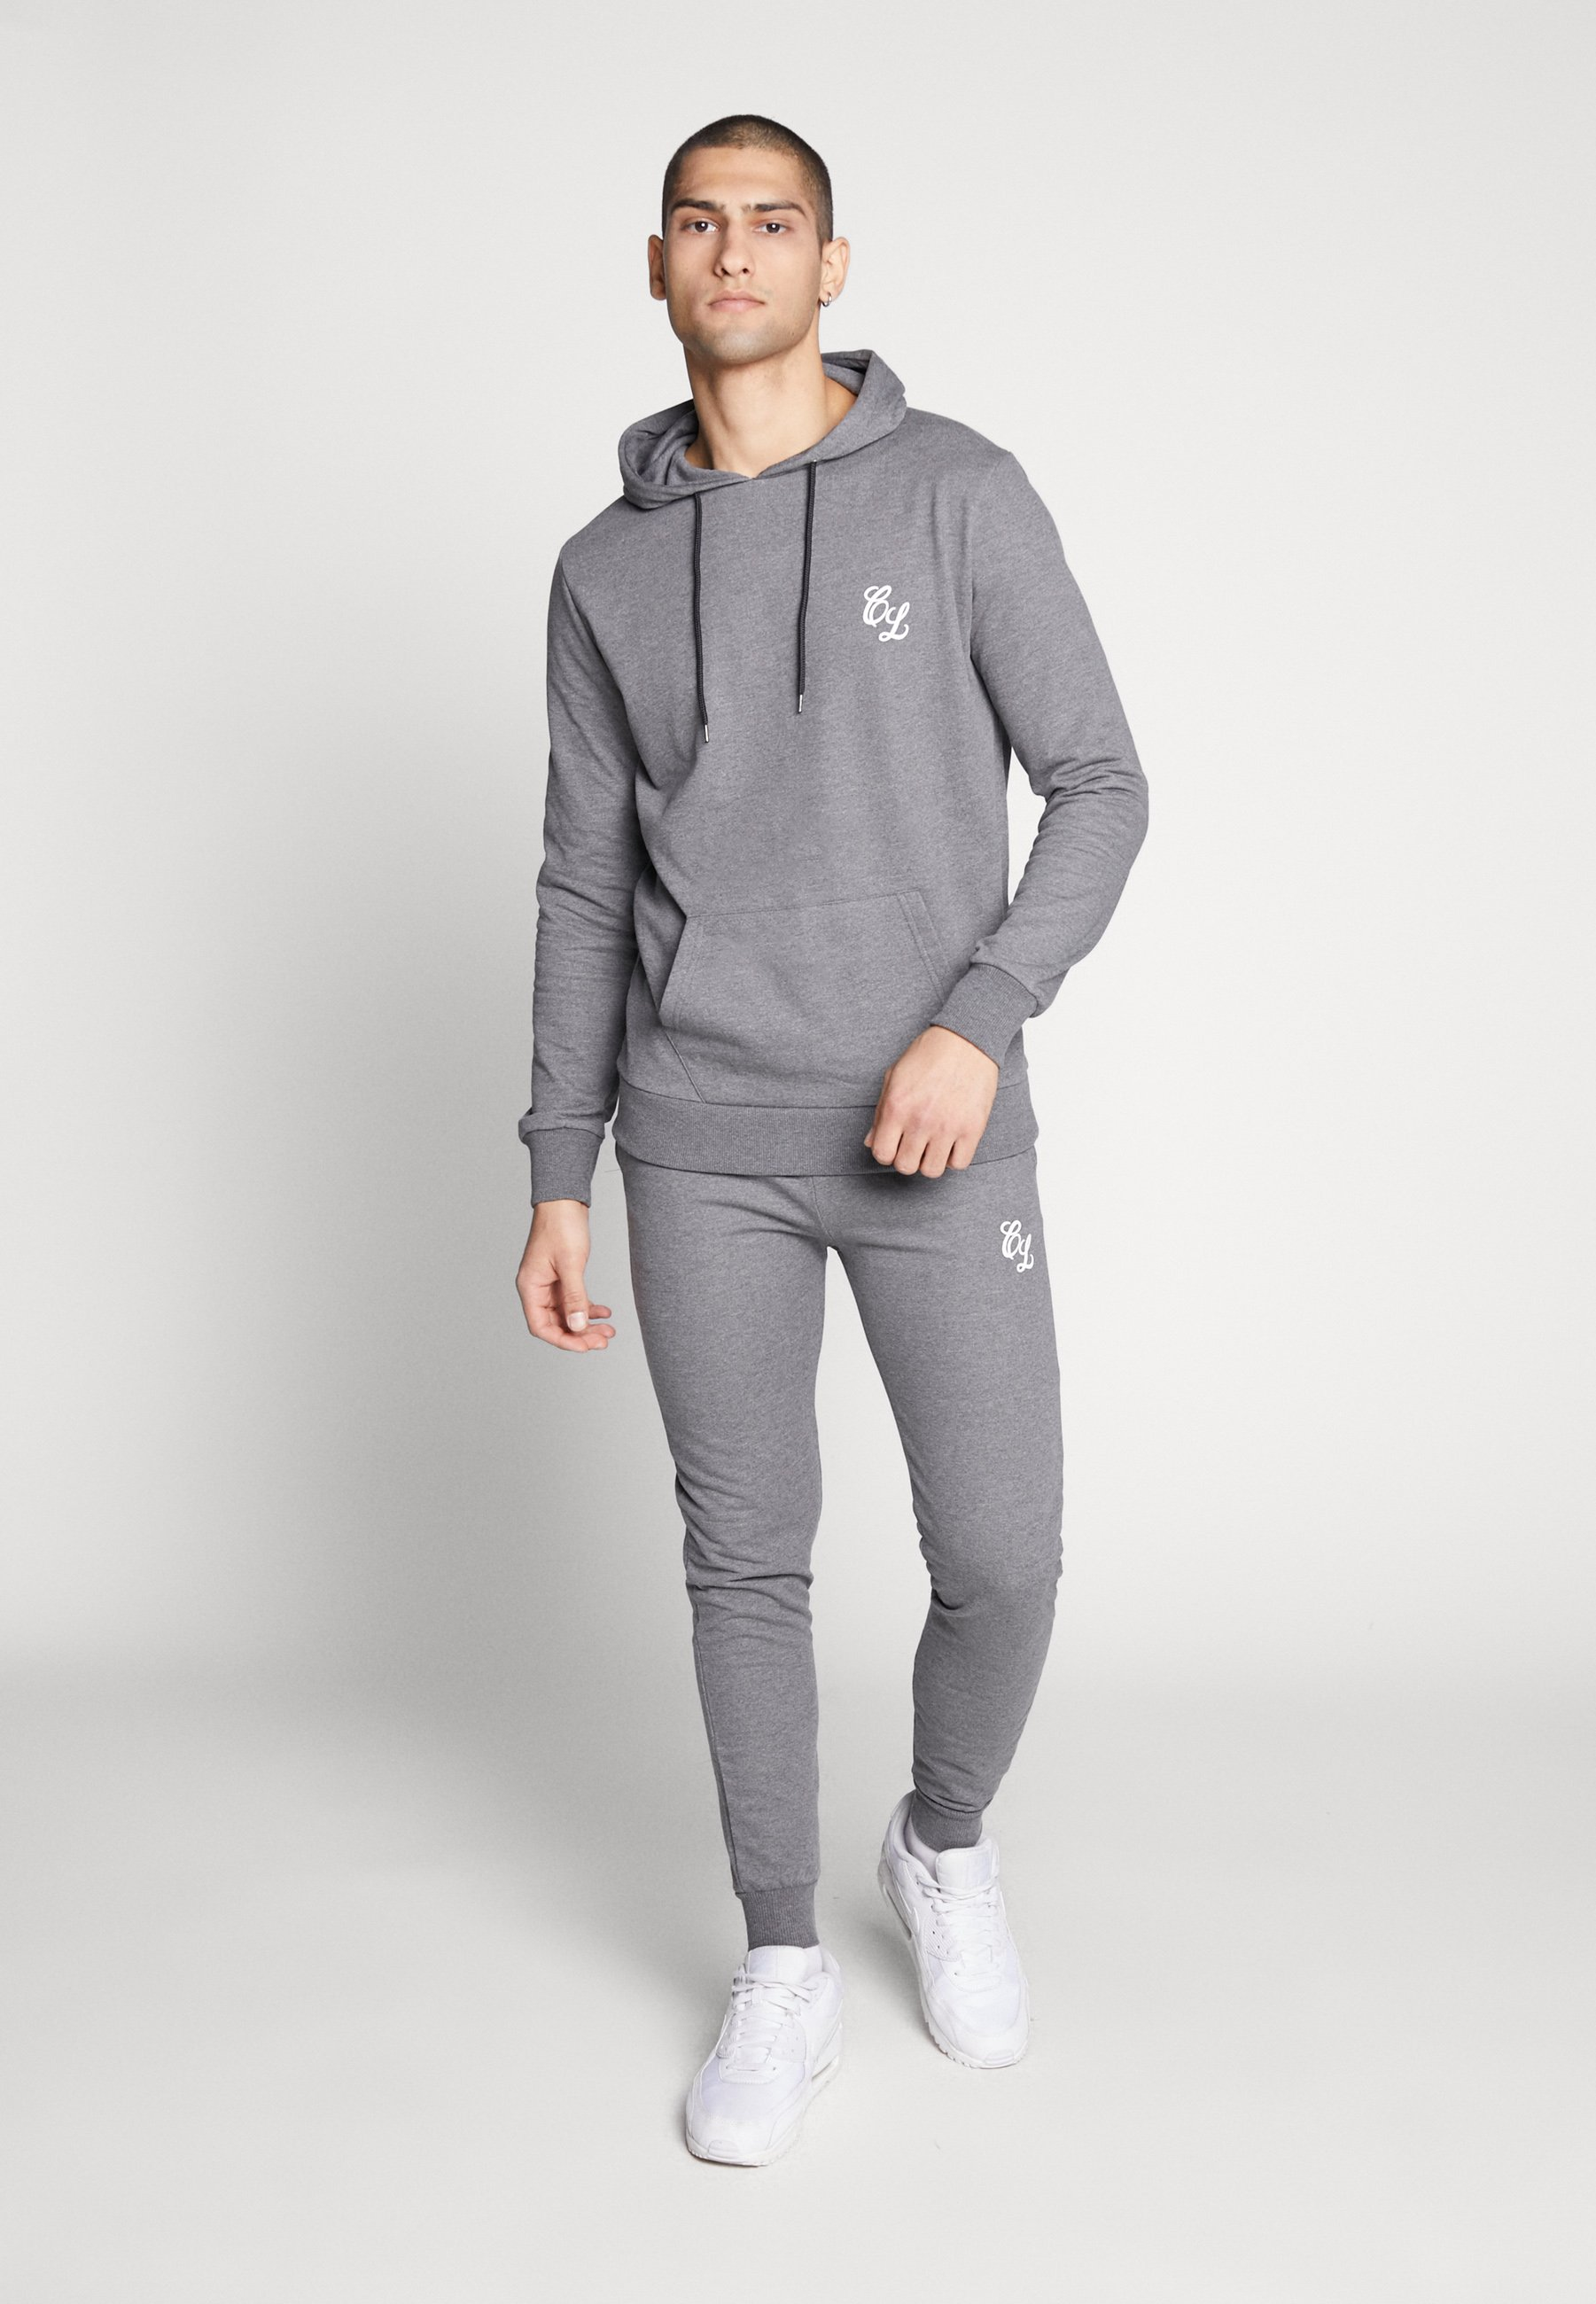 Closure London Signature Tracksuit - Hoodie Charcoal